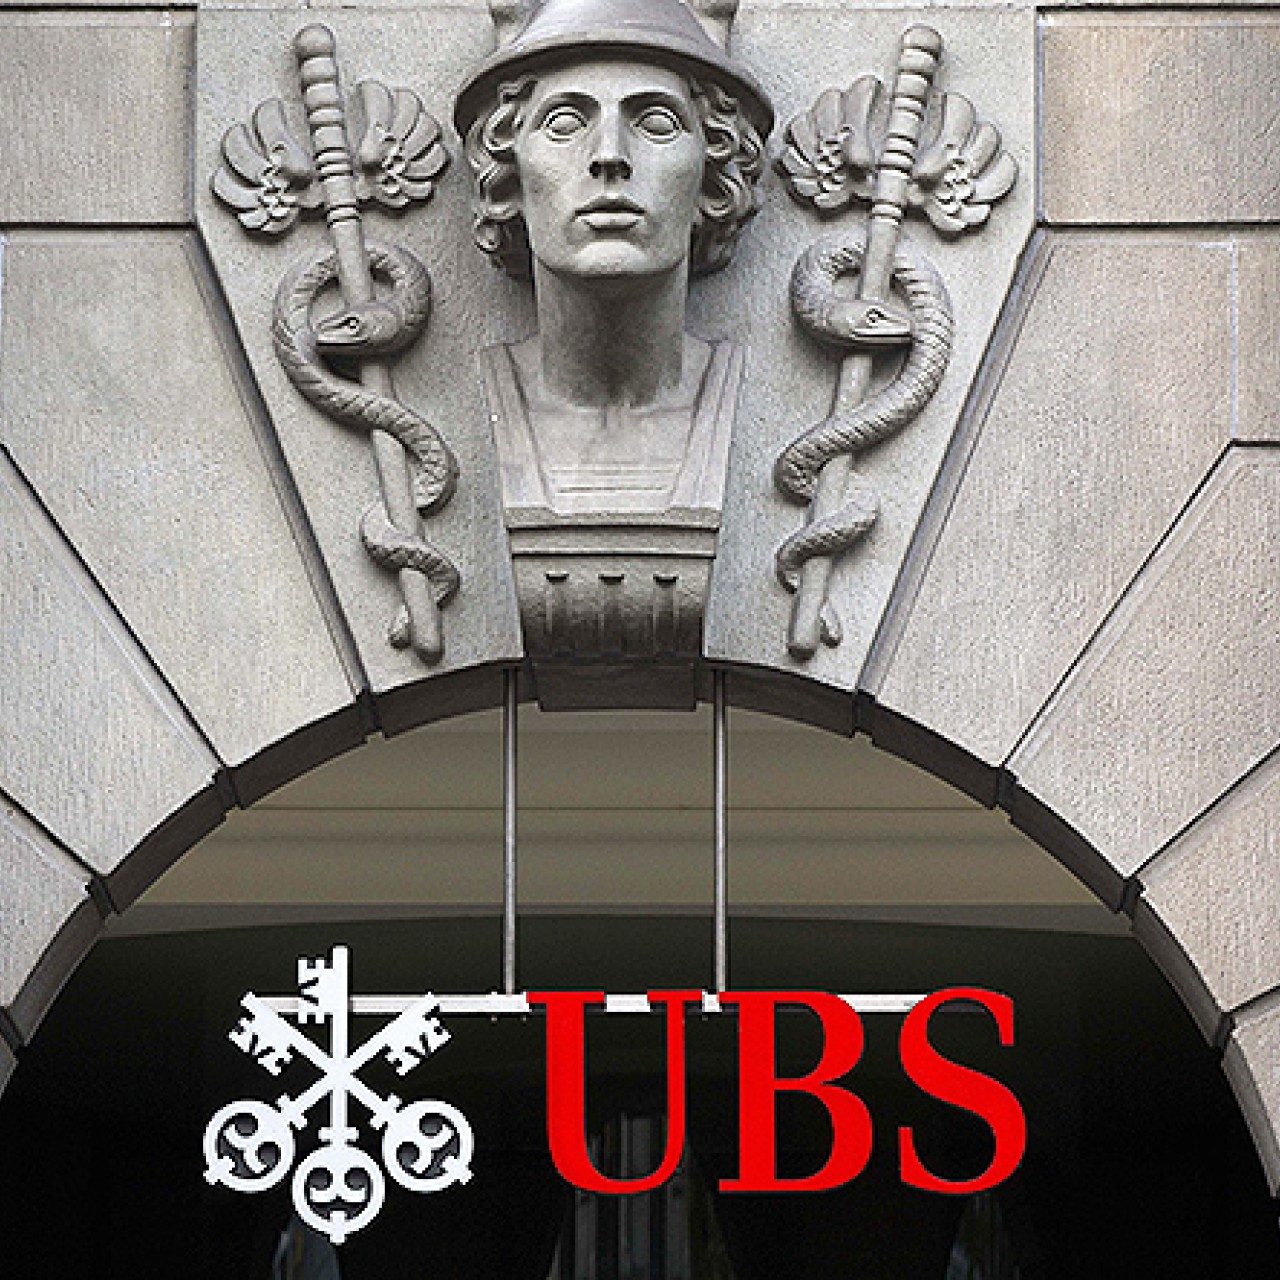 UBS traders tried to rig Hibor, HKMA probe finds | South China